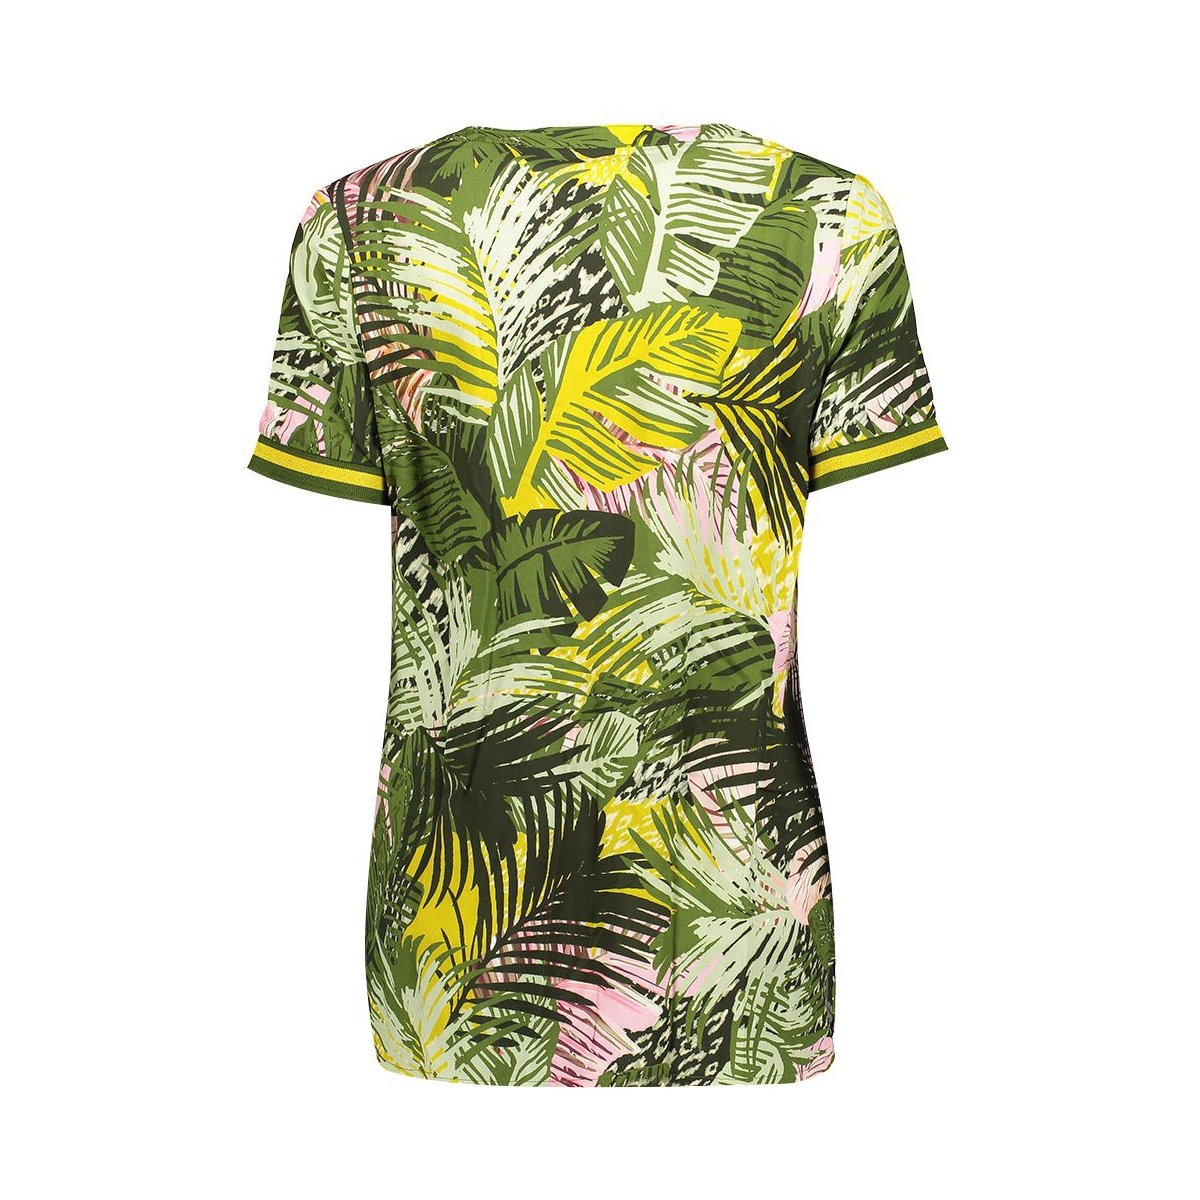 top aop leaves tape at sleeves 03217 20 geisha t-shirt army/pink combi